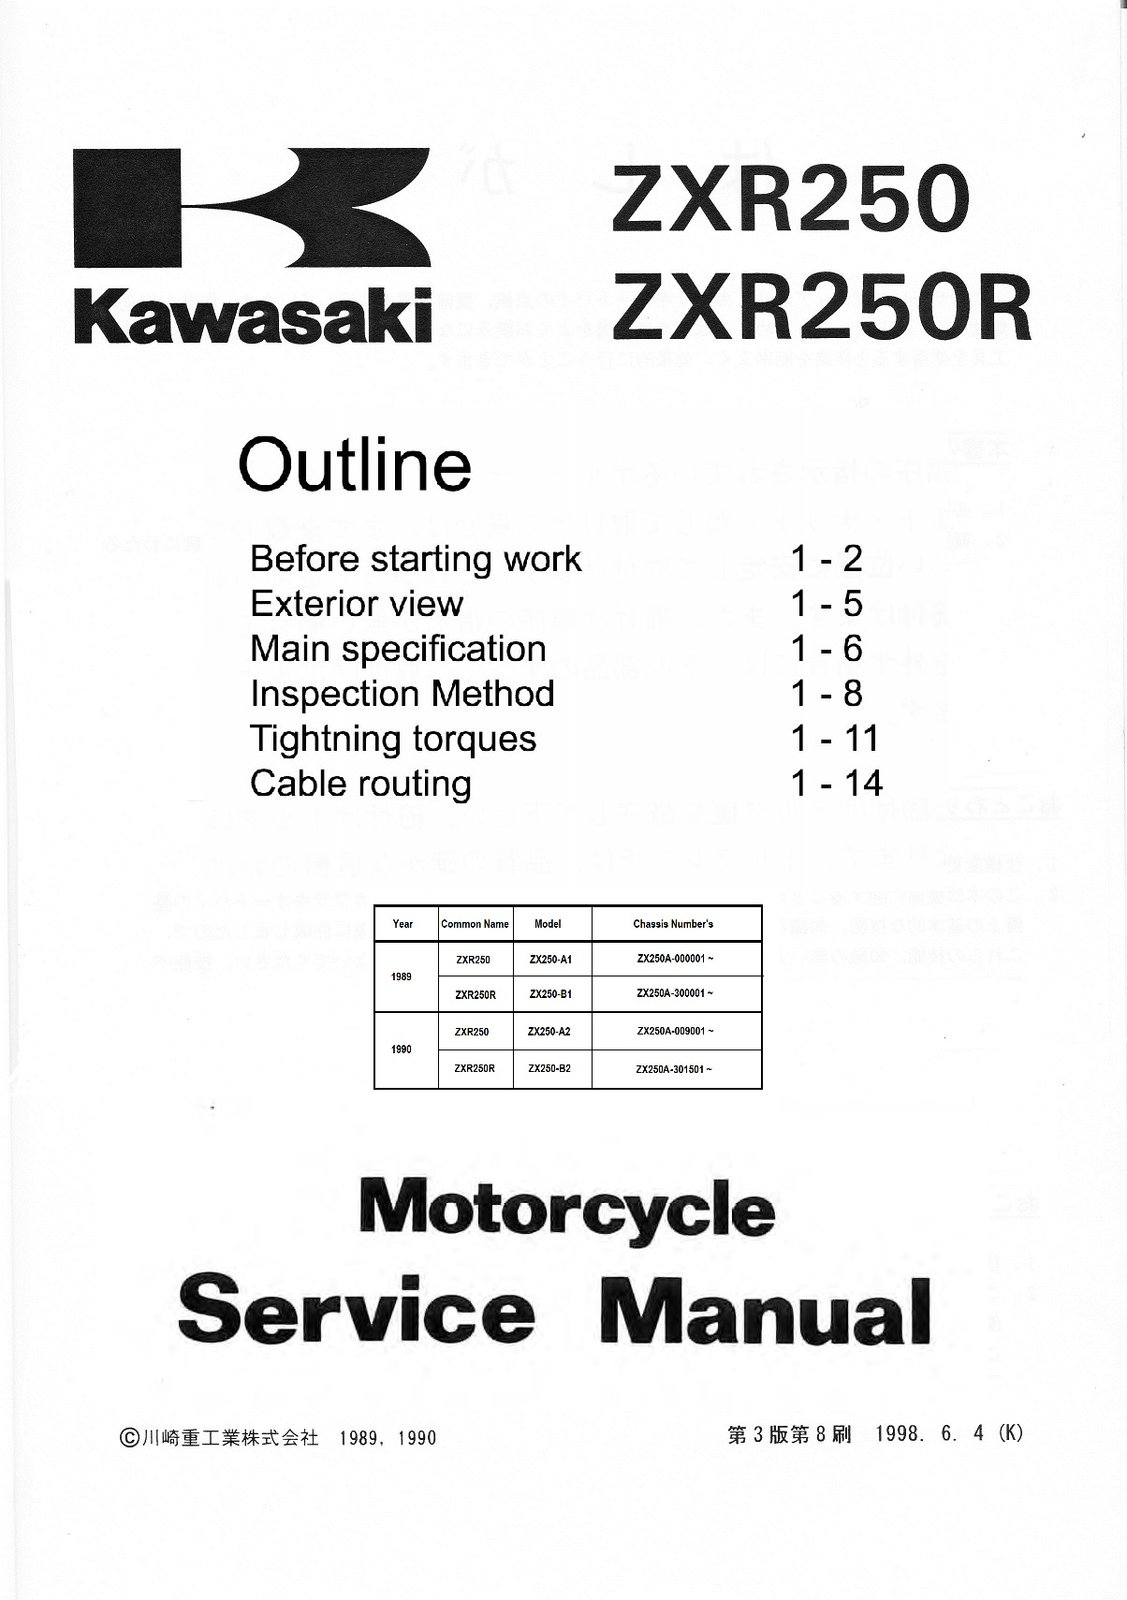 ZXR250A cover section 1.jpg